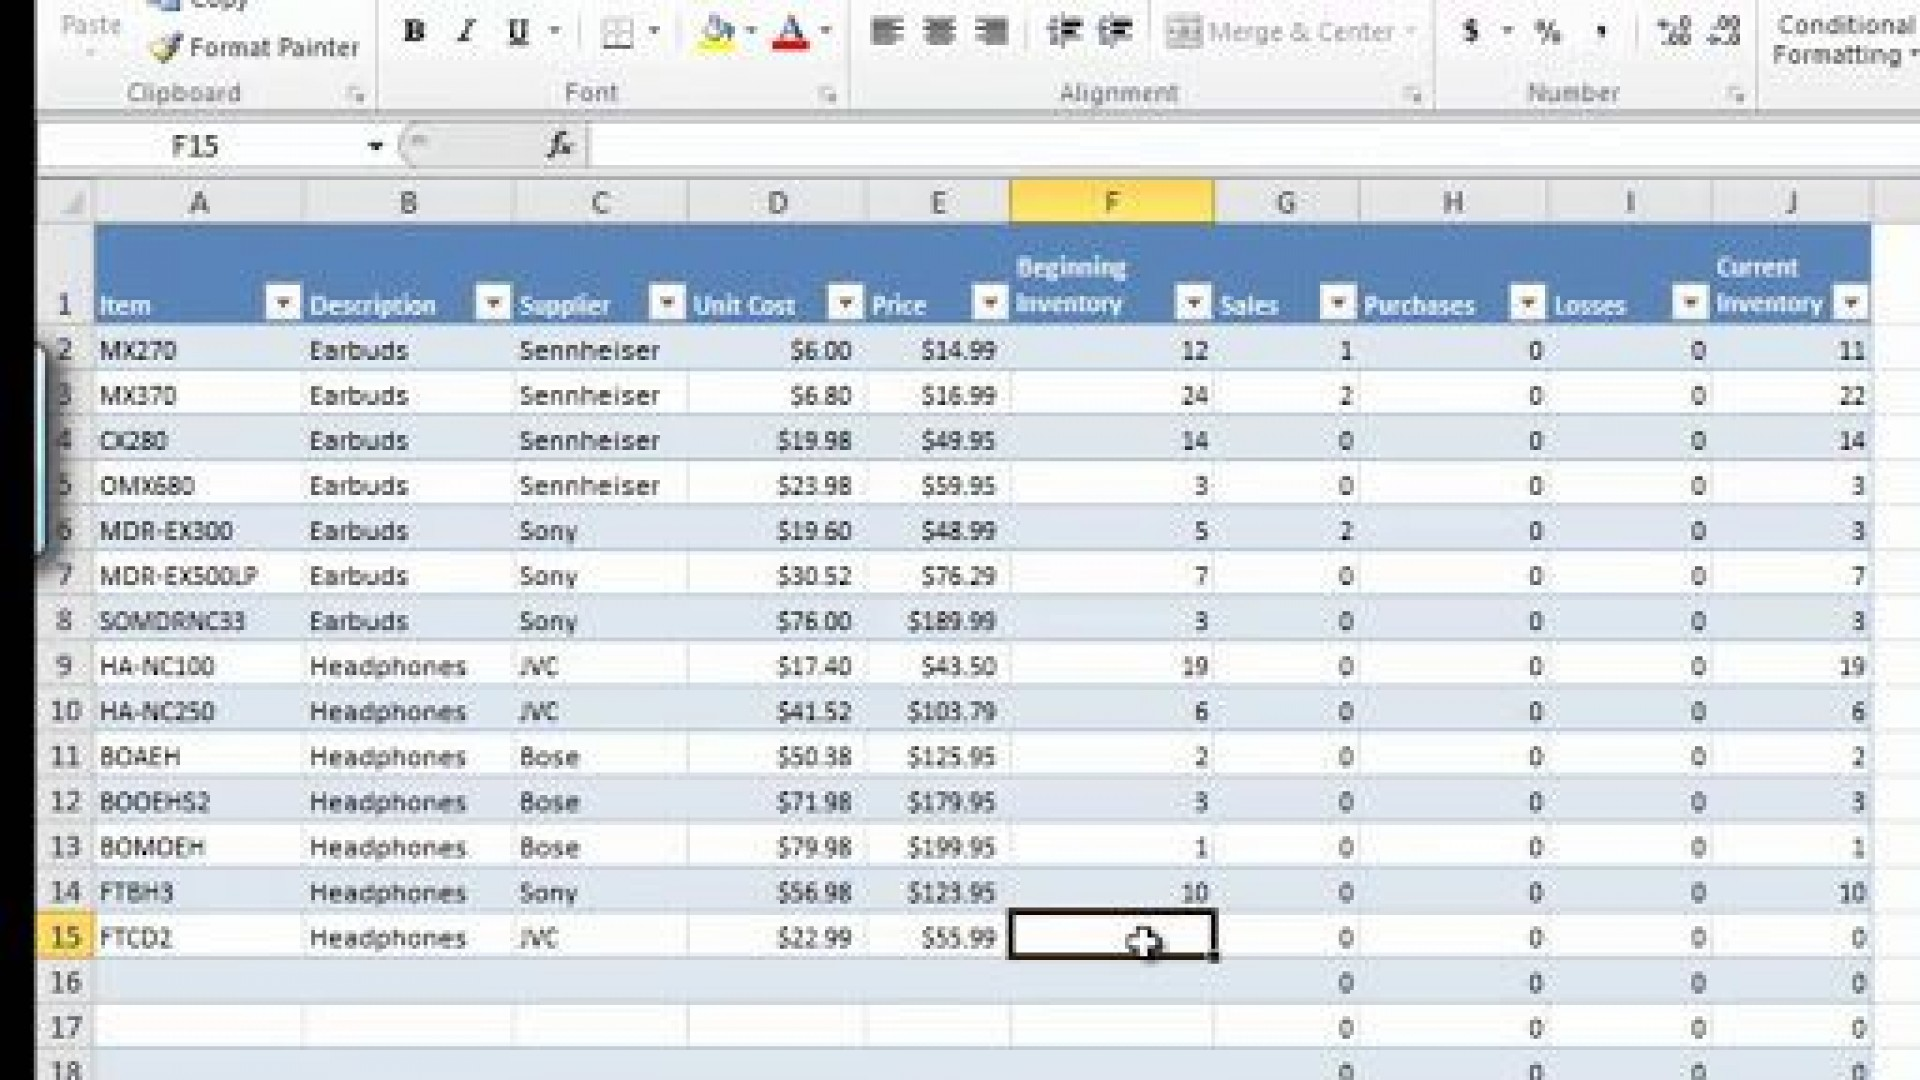 003 Dreaded Microsoft Excel Inventory Template Free Download Sample 1920